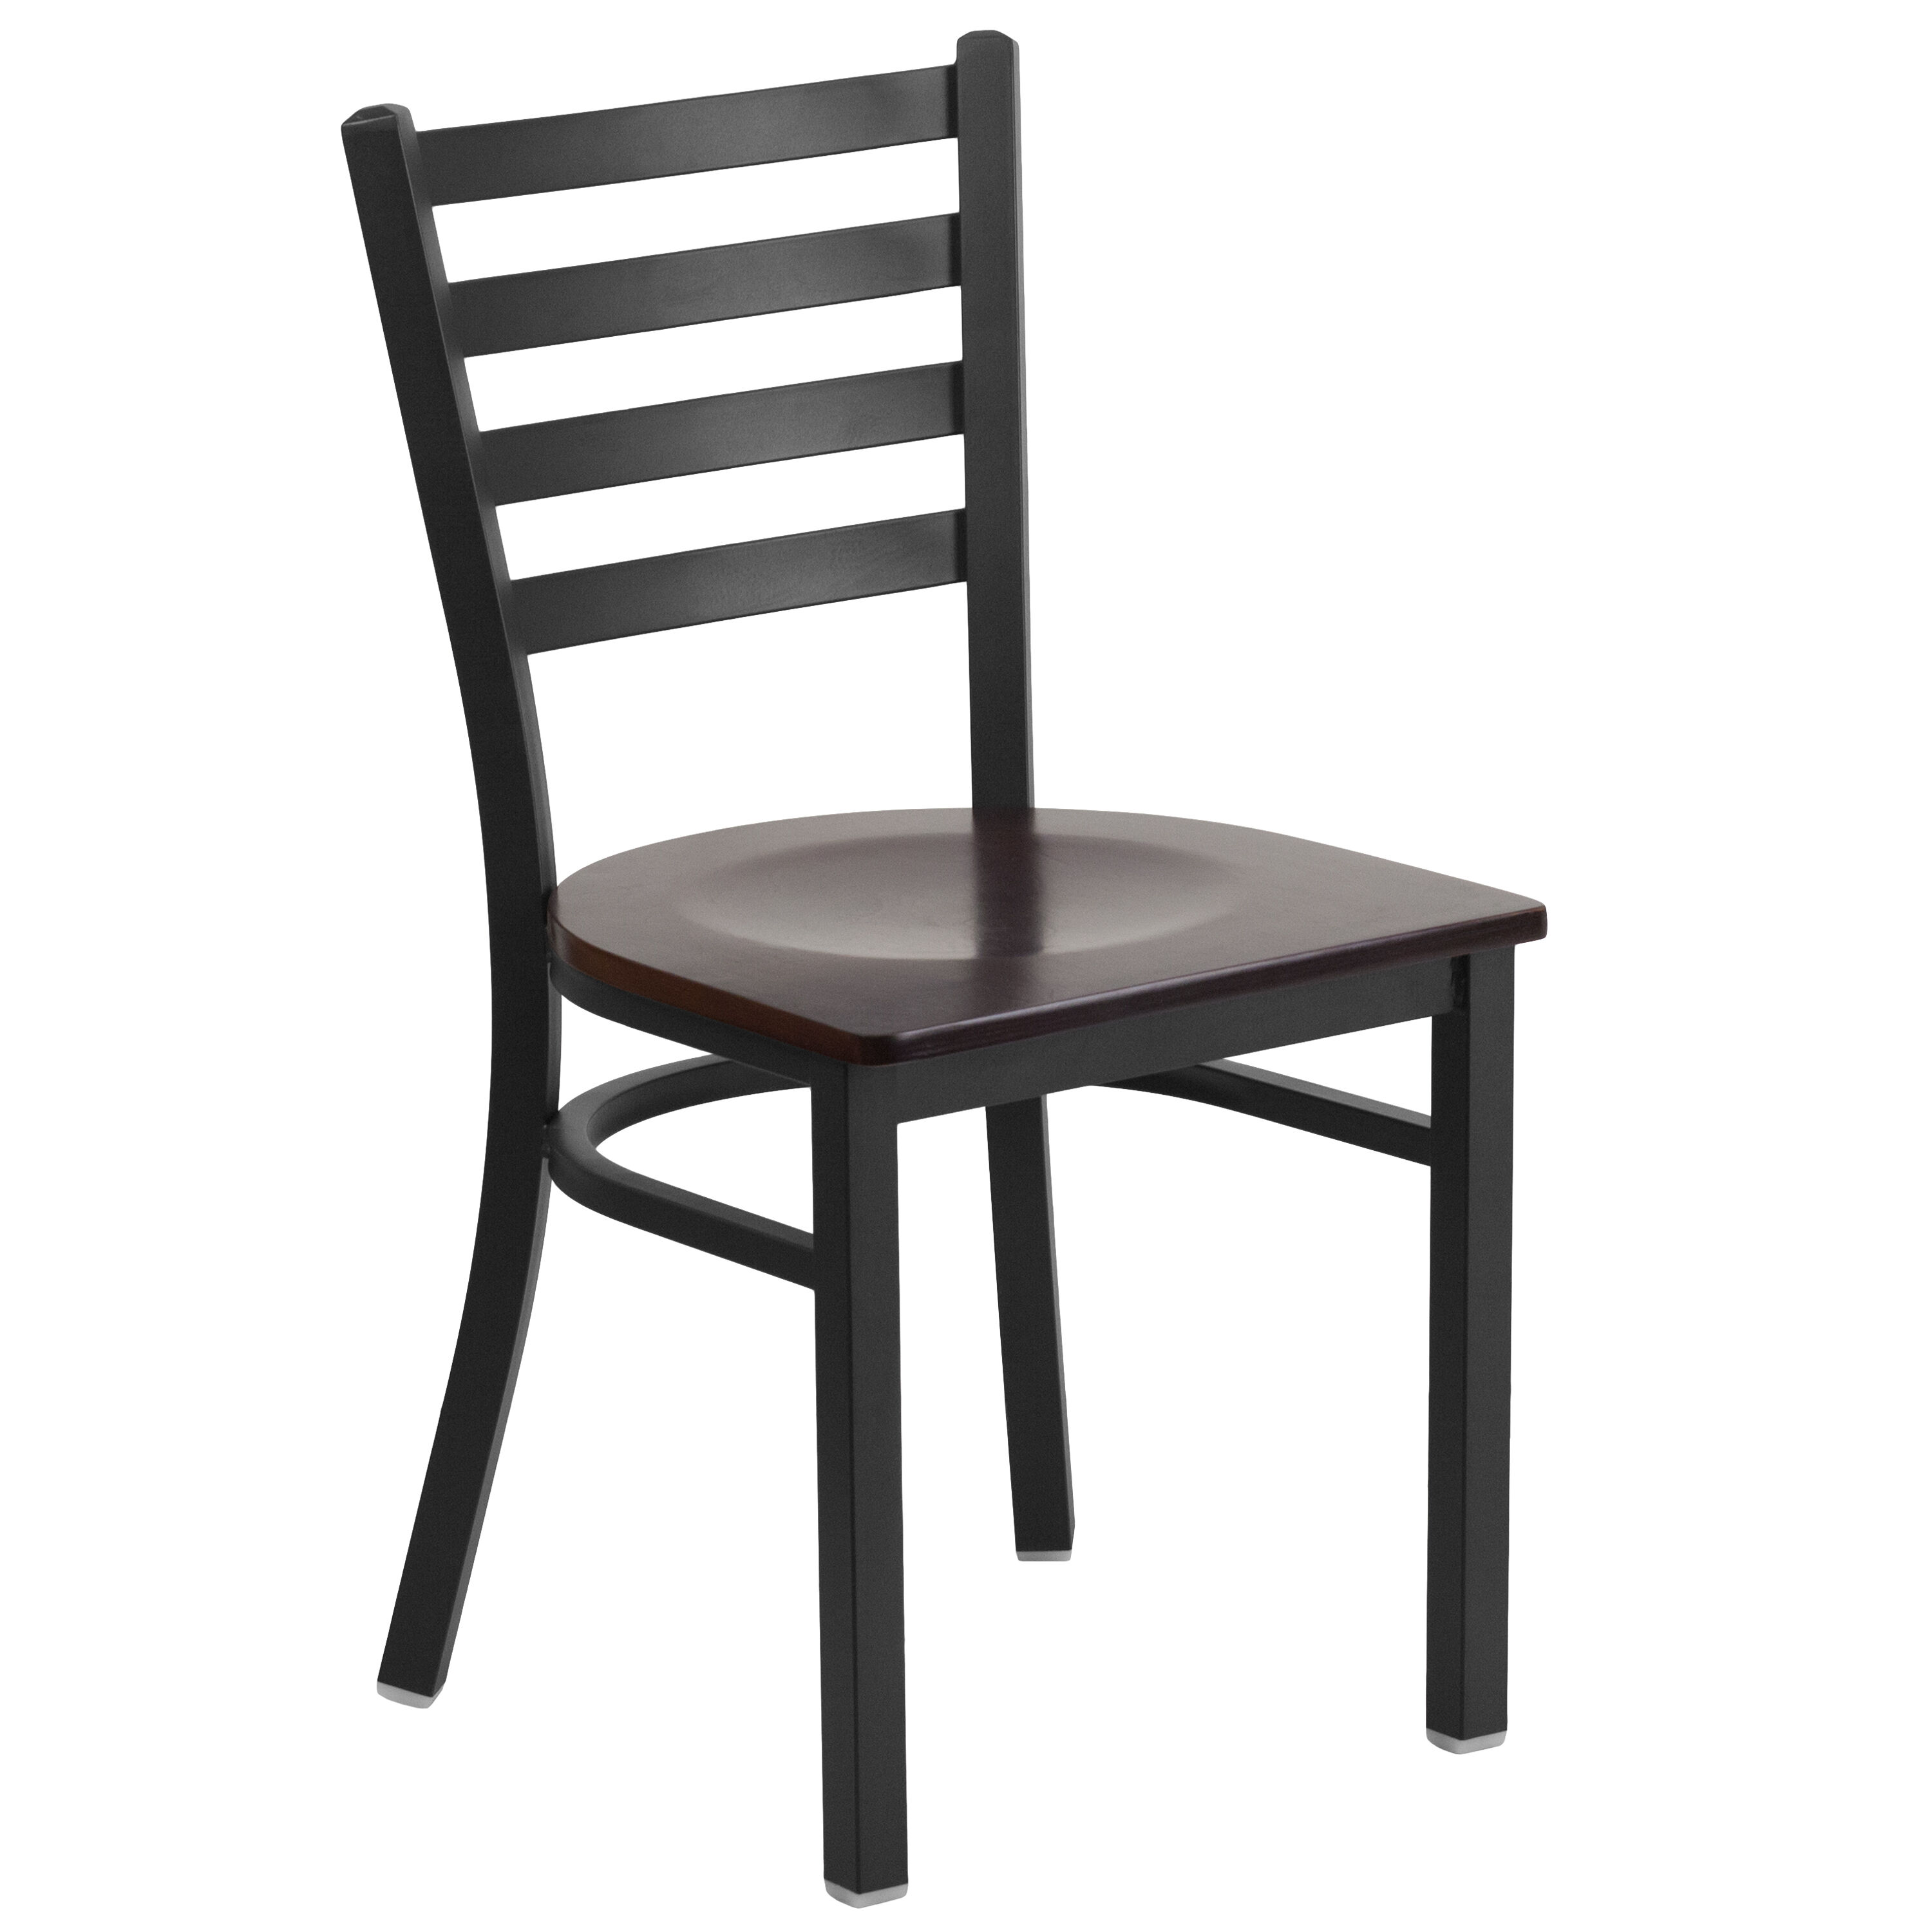 Elegant Black Ladder Back Metal Restaurant Chair With Walnut Wood Seat